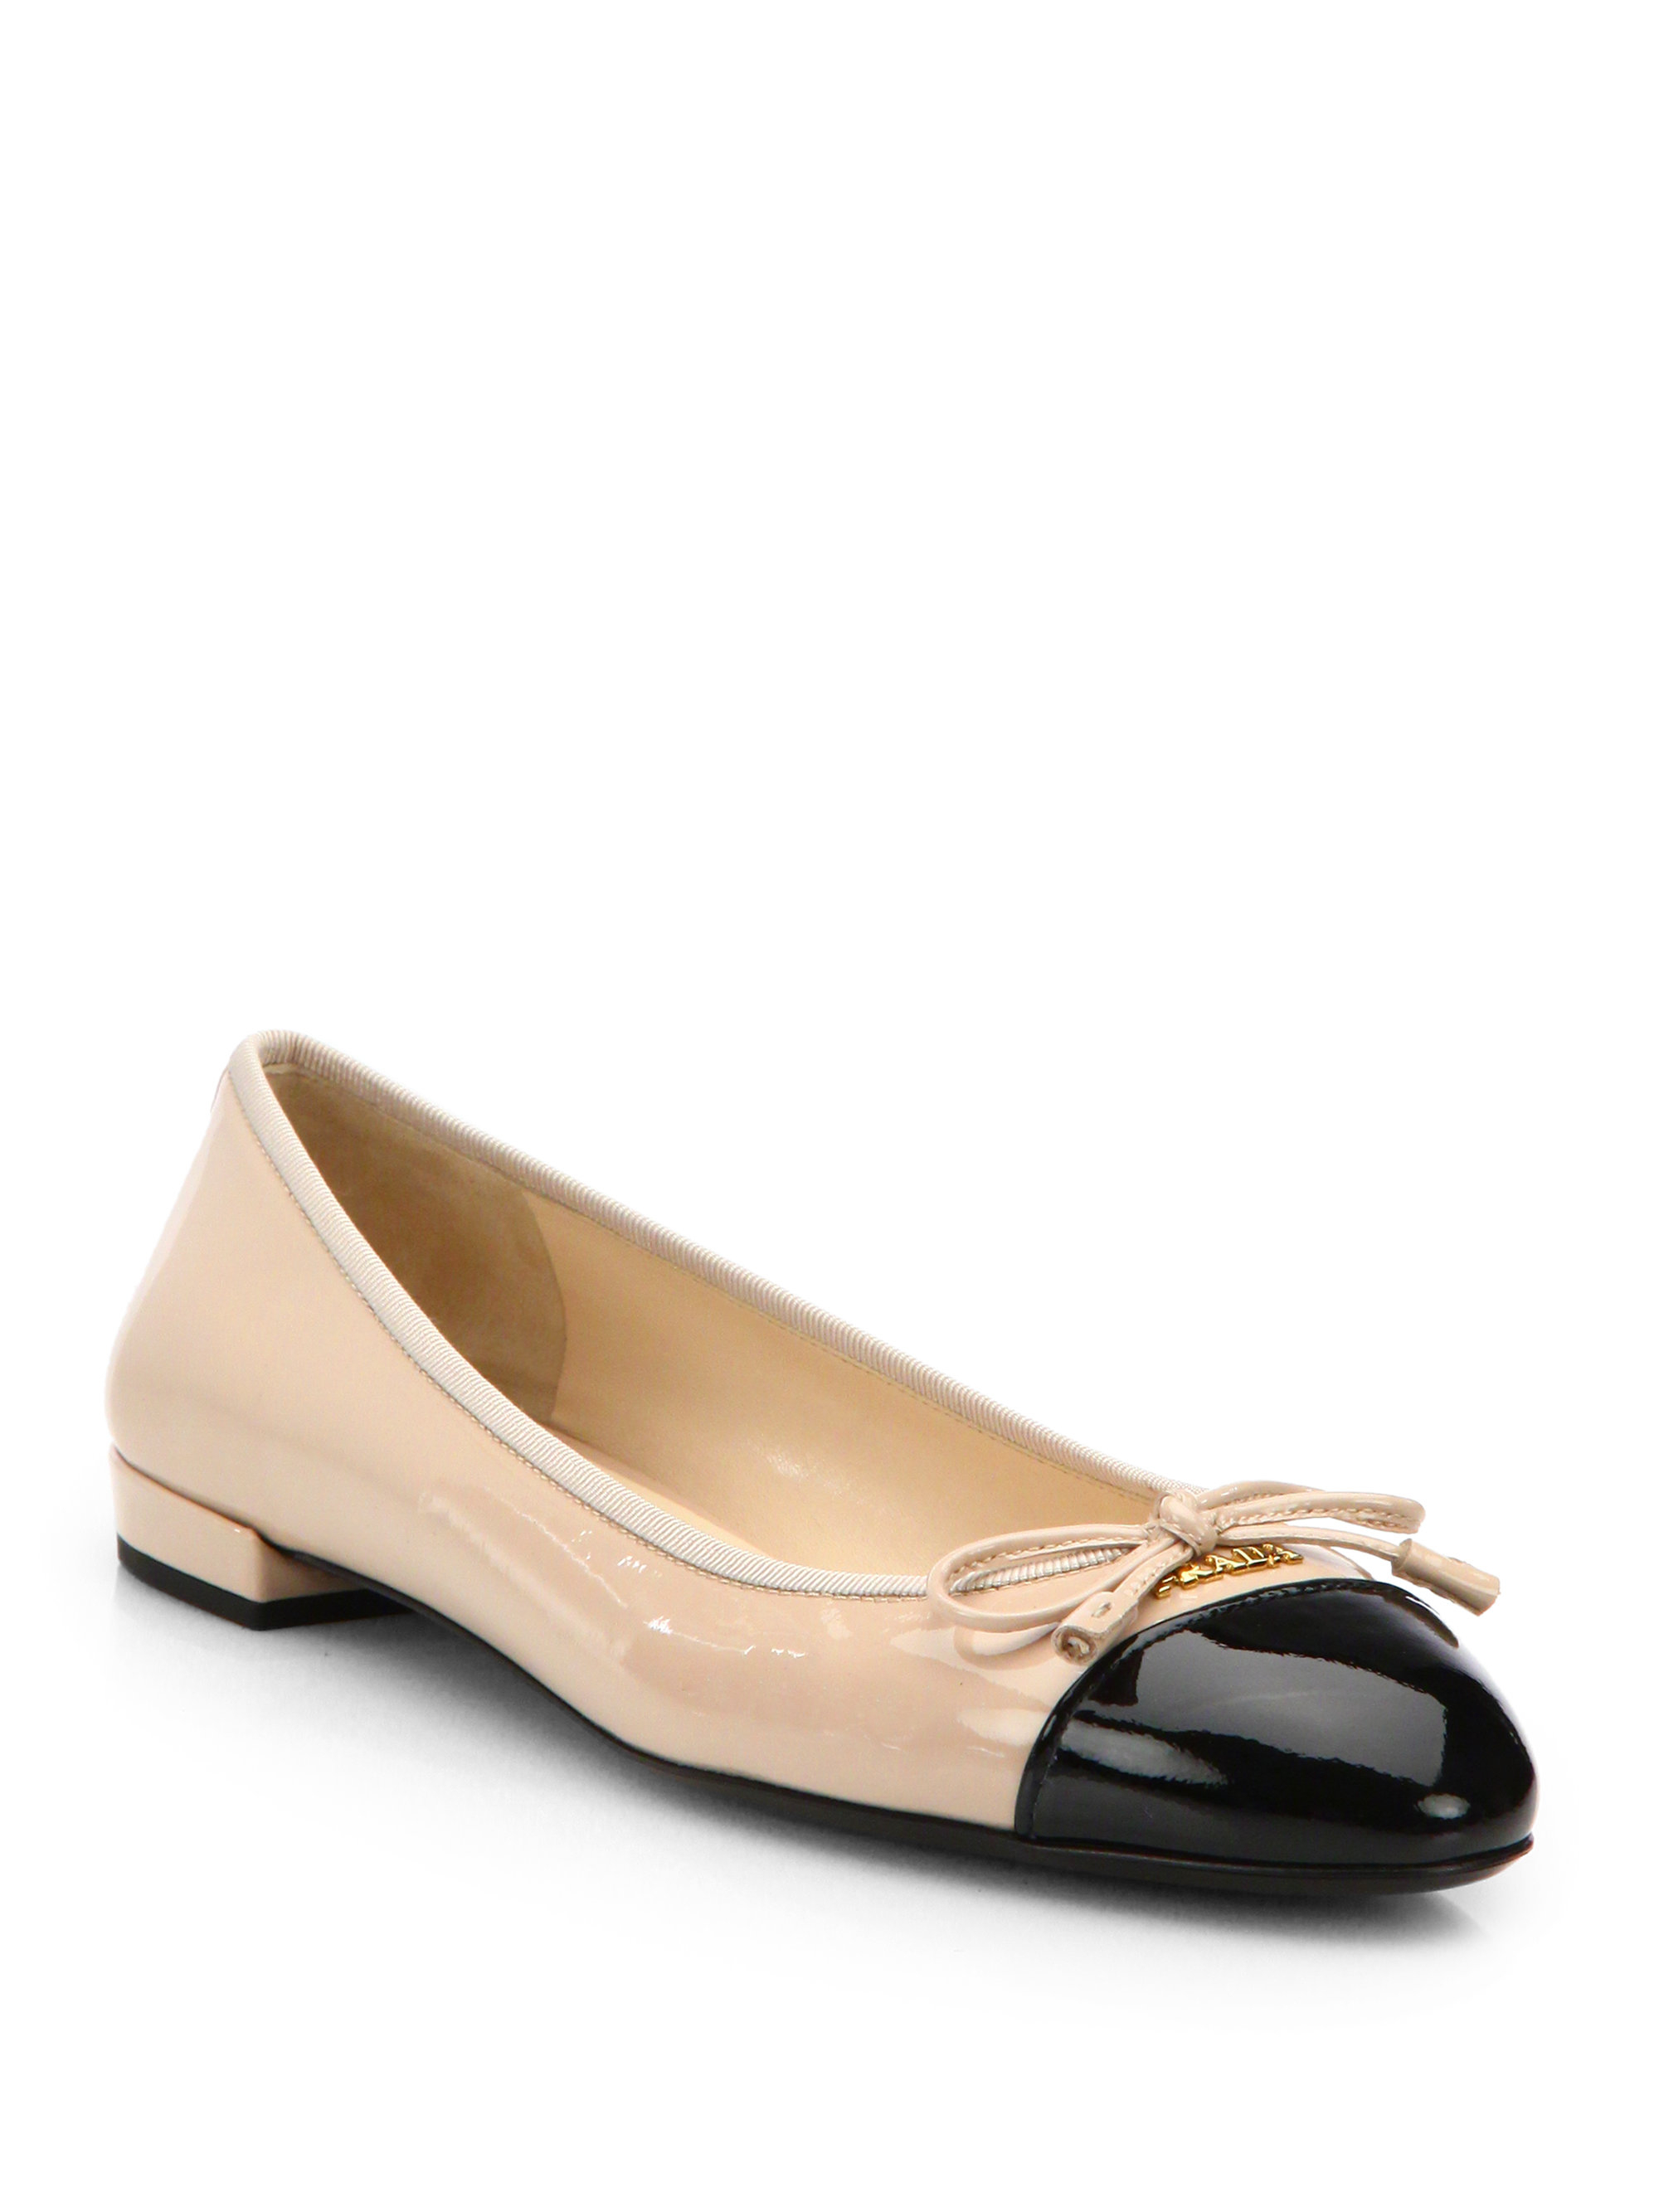 Prada Leather ballerina shoes